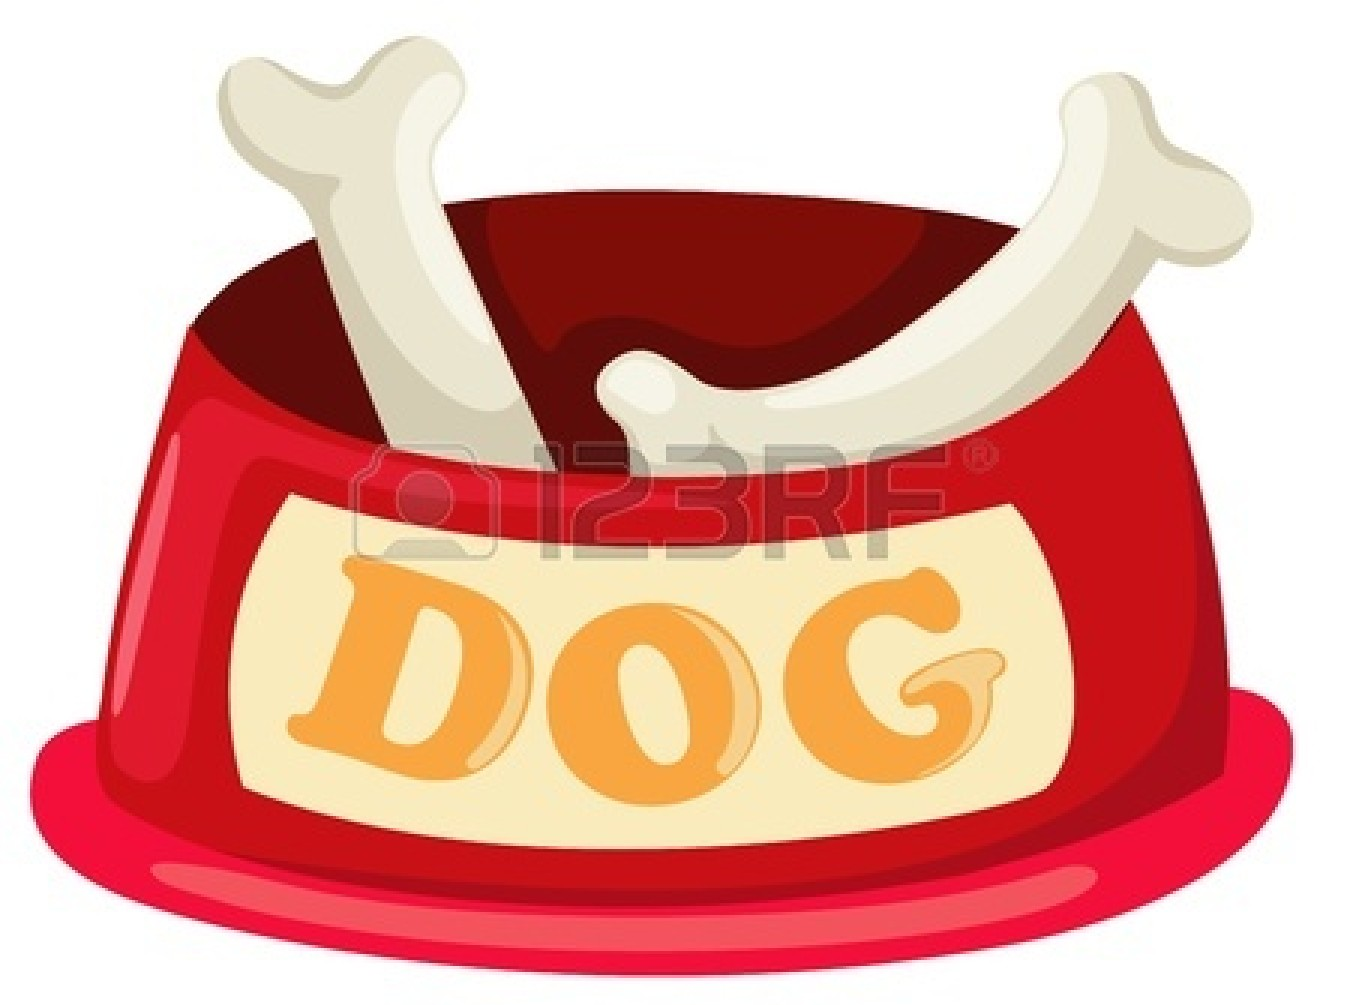 Dog Bone In Bowl Clipart 1762 - Dog Bowl Clipart